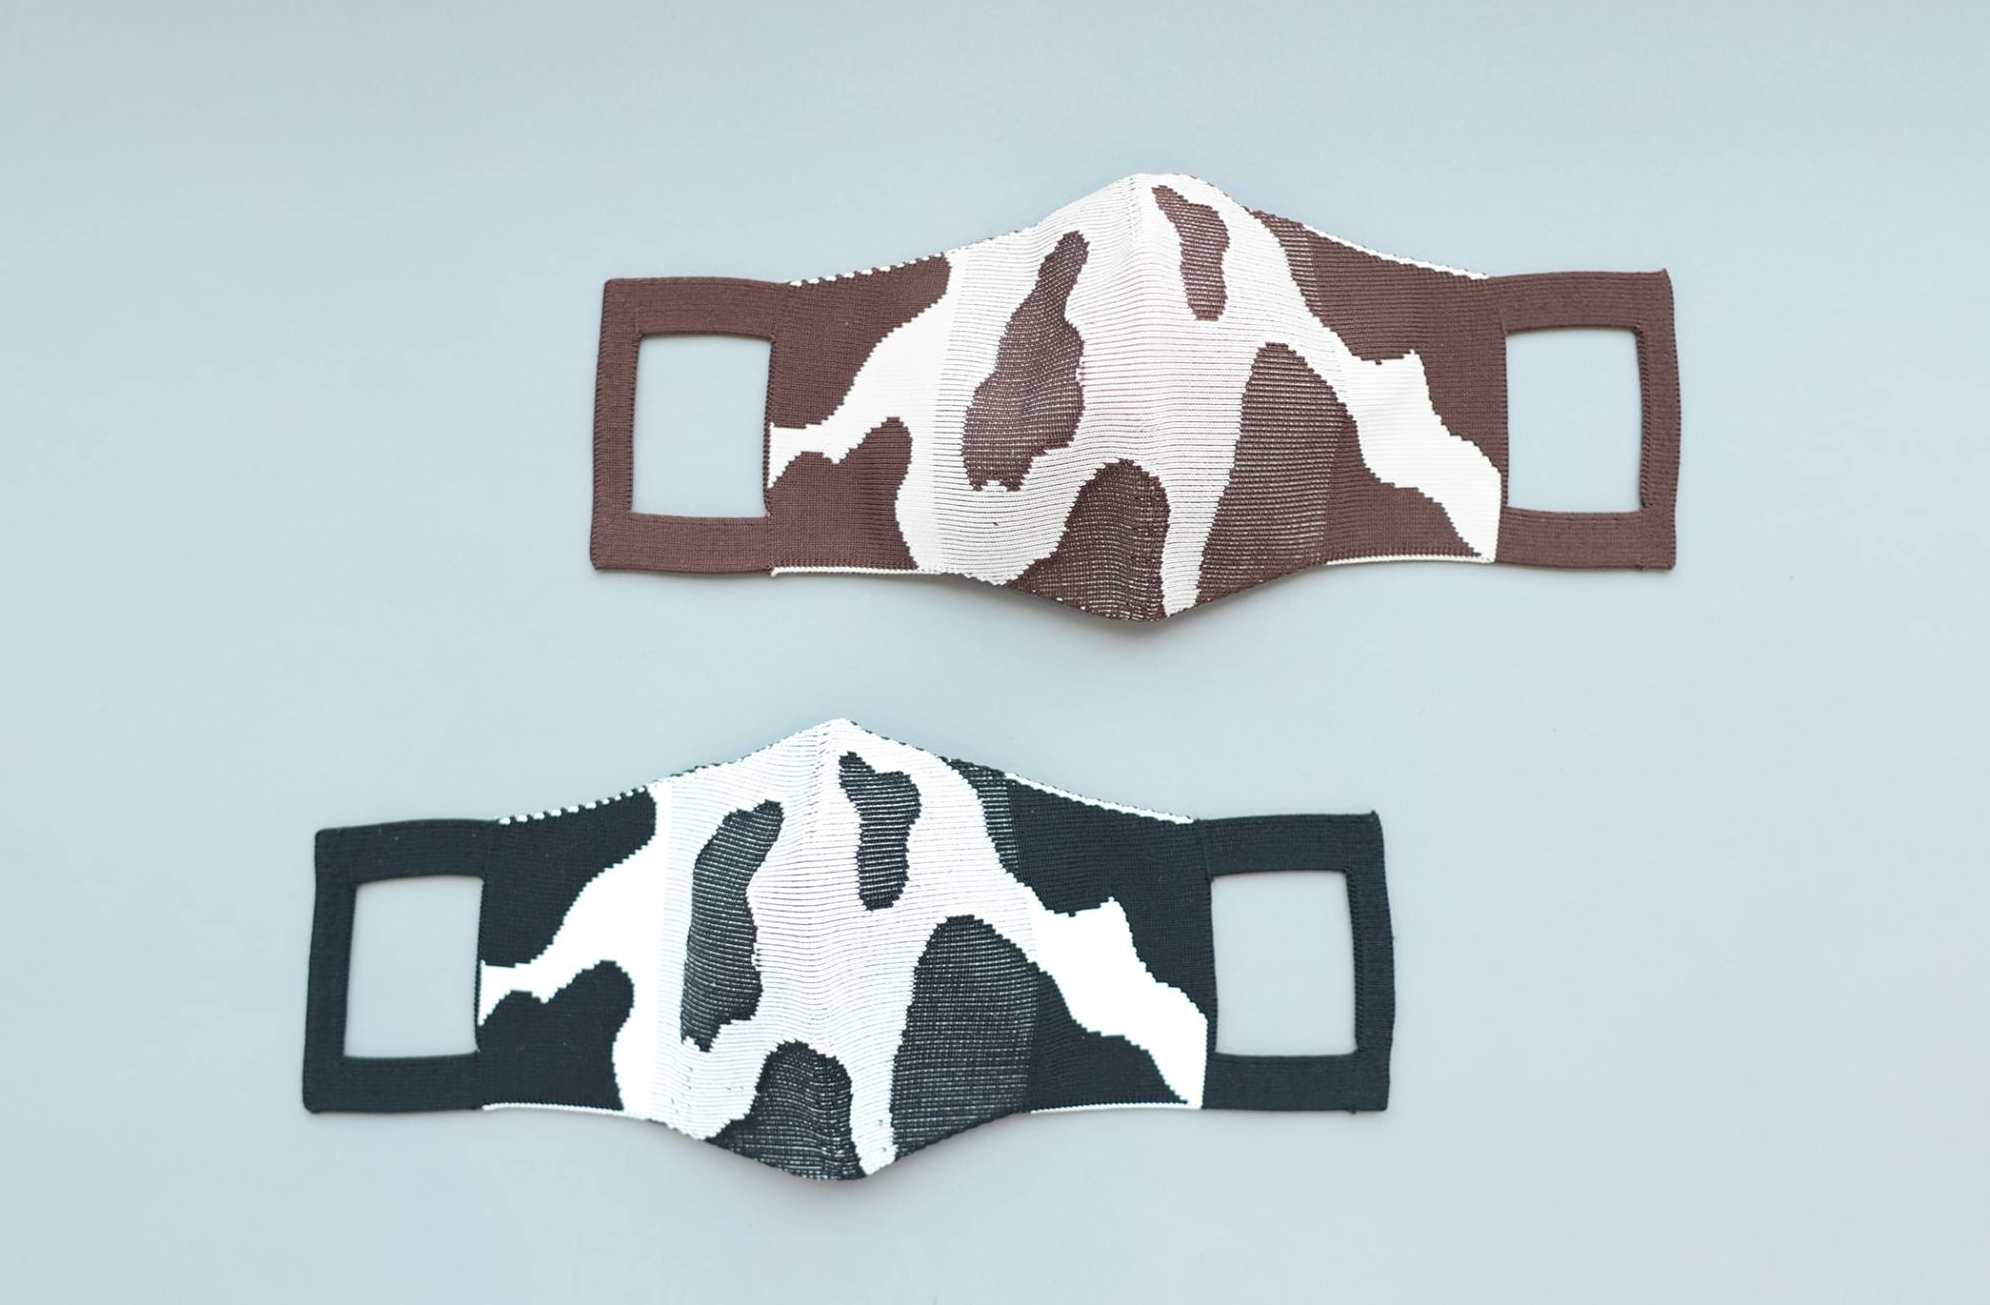 Protective spots: KNT365's eco-friendly Holstein Friesian cow print masks are made of cotton and recycled polyester and seamlessly knitted to avoid any waste offcuts.